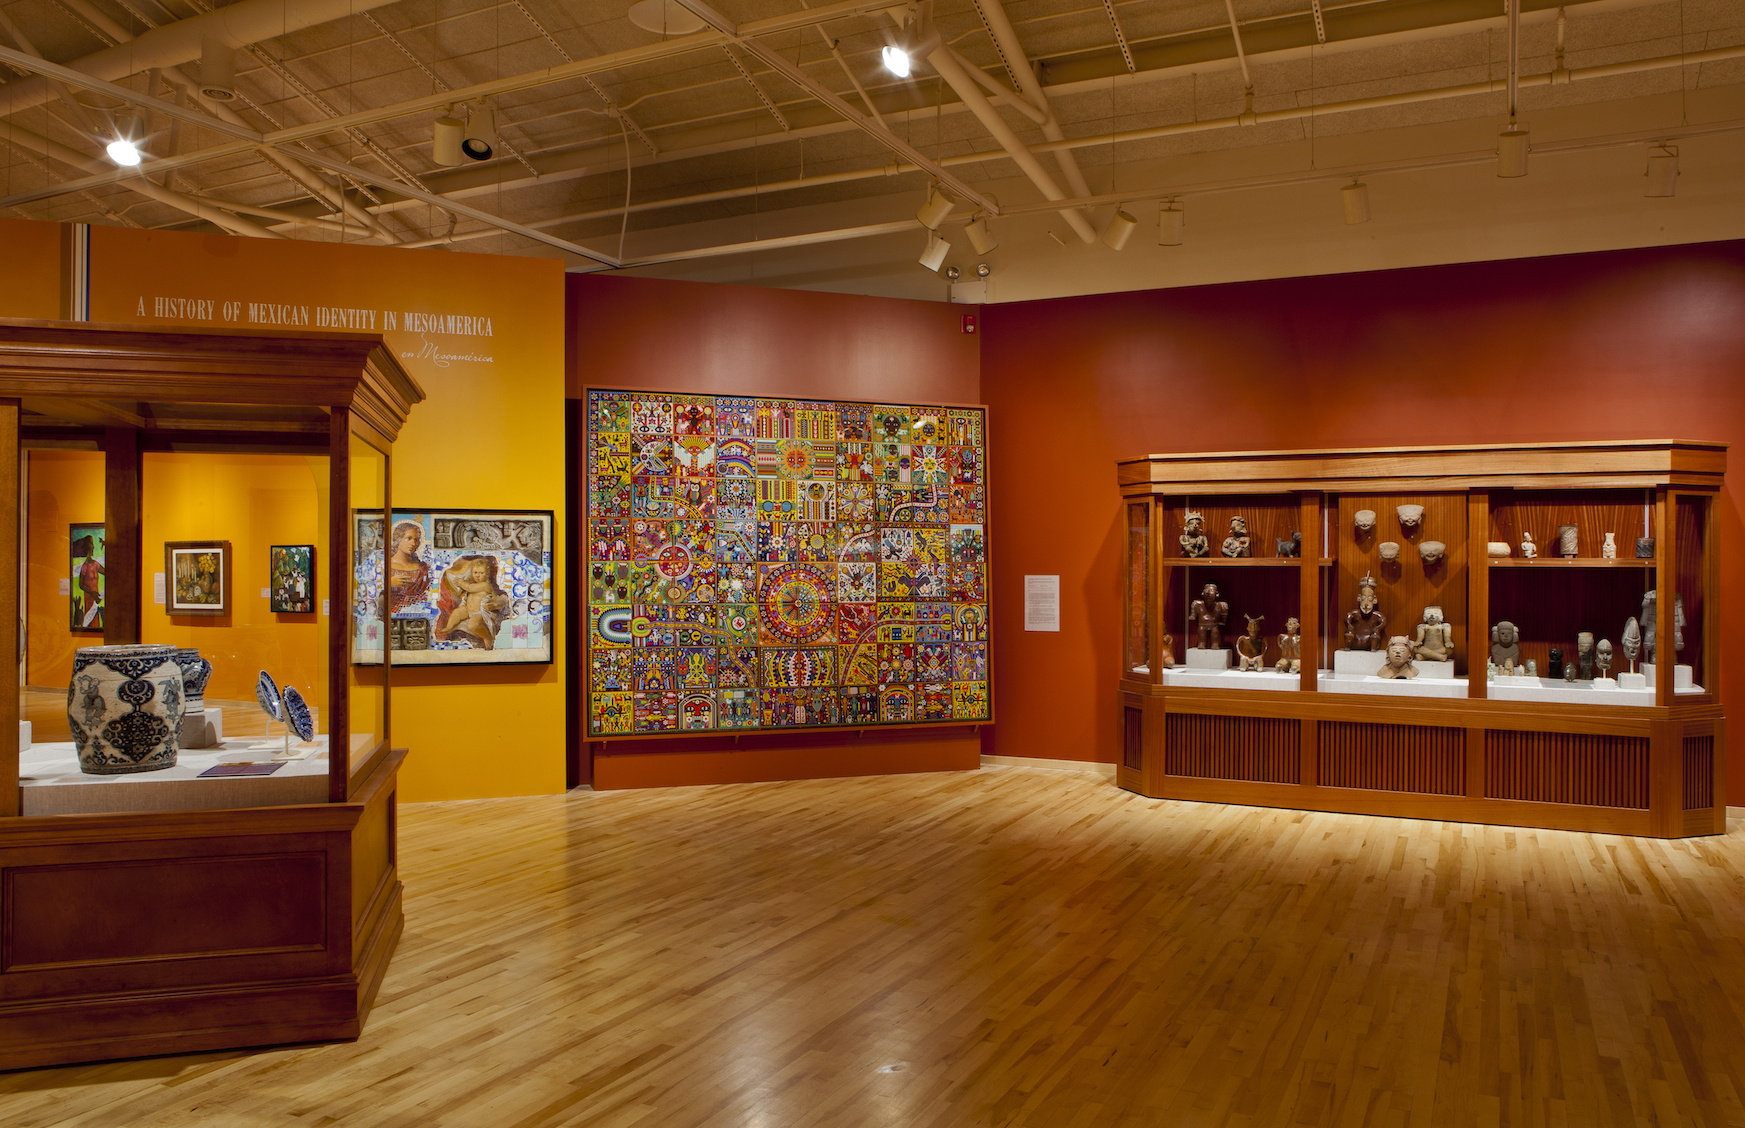 Alt: A museum gallery showcasing Mesoamerican pottery, paintings and tapestries against a red wall.